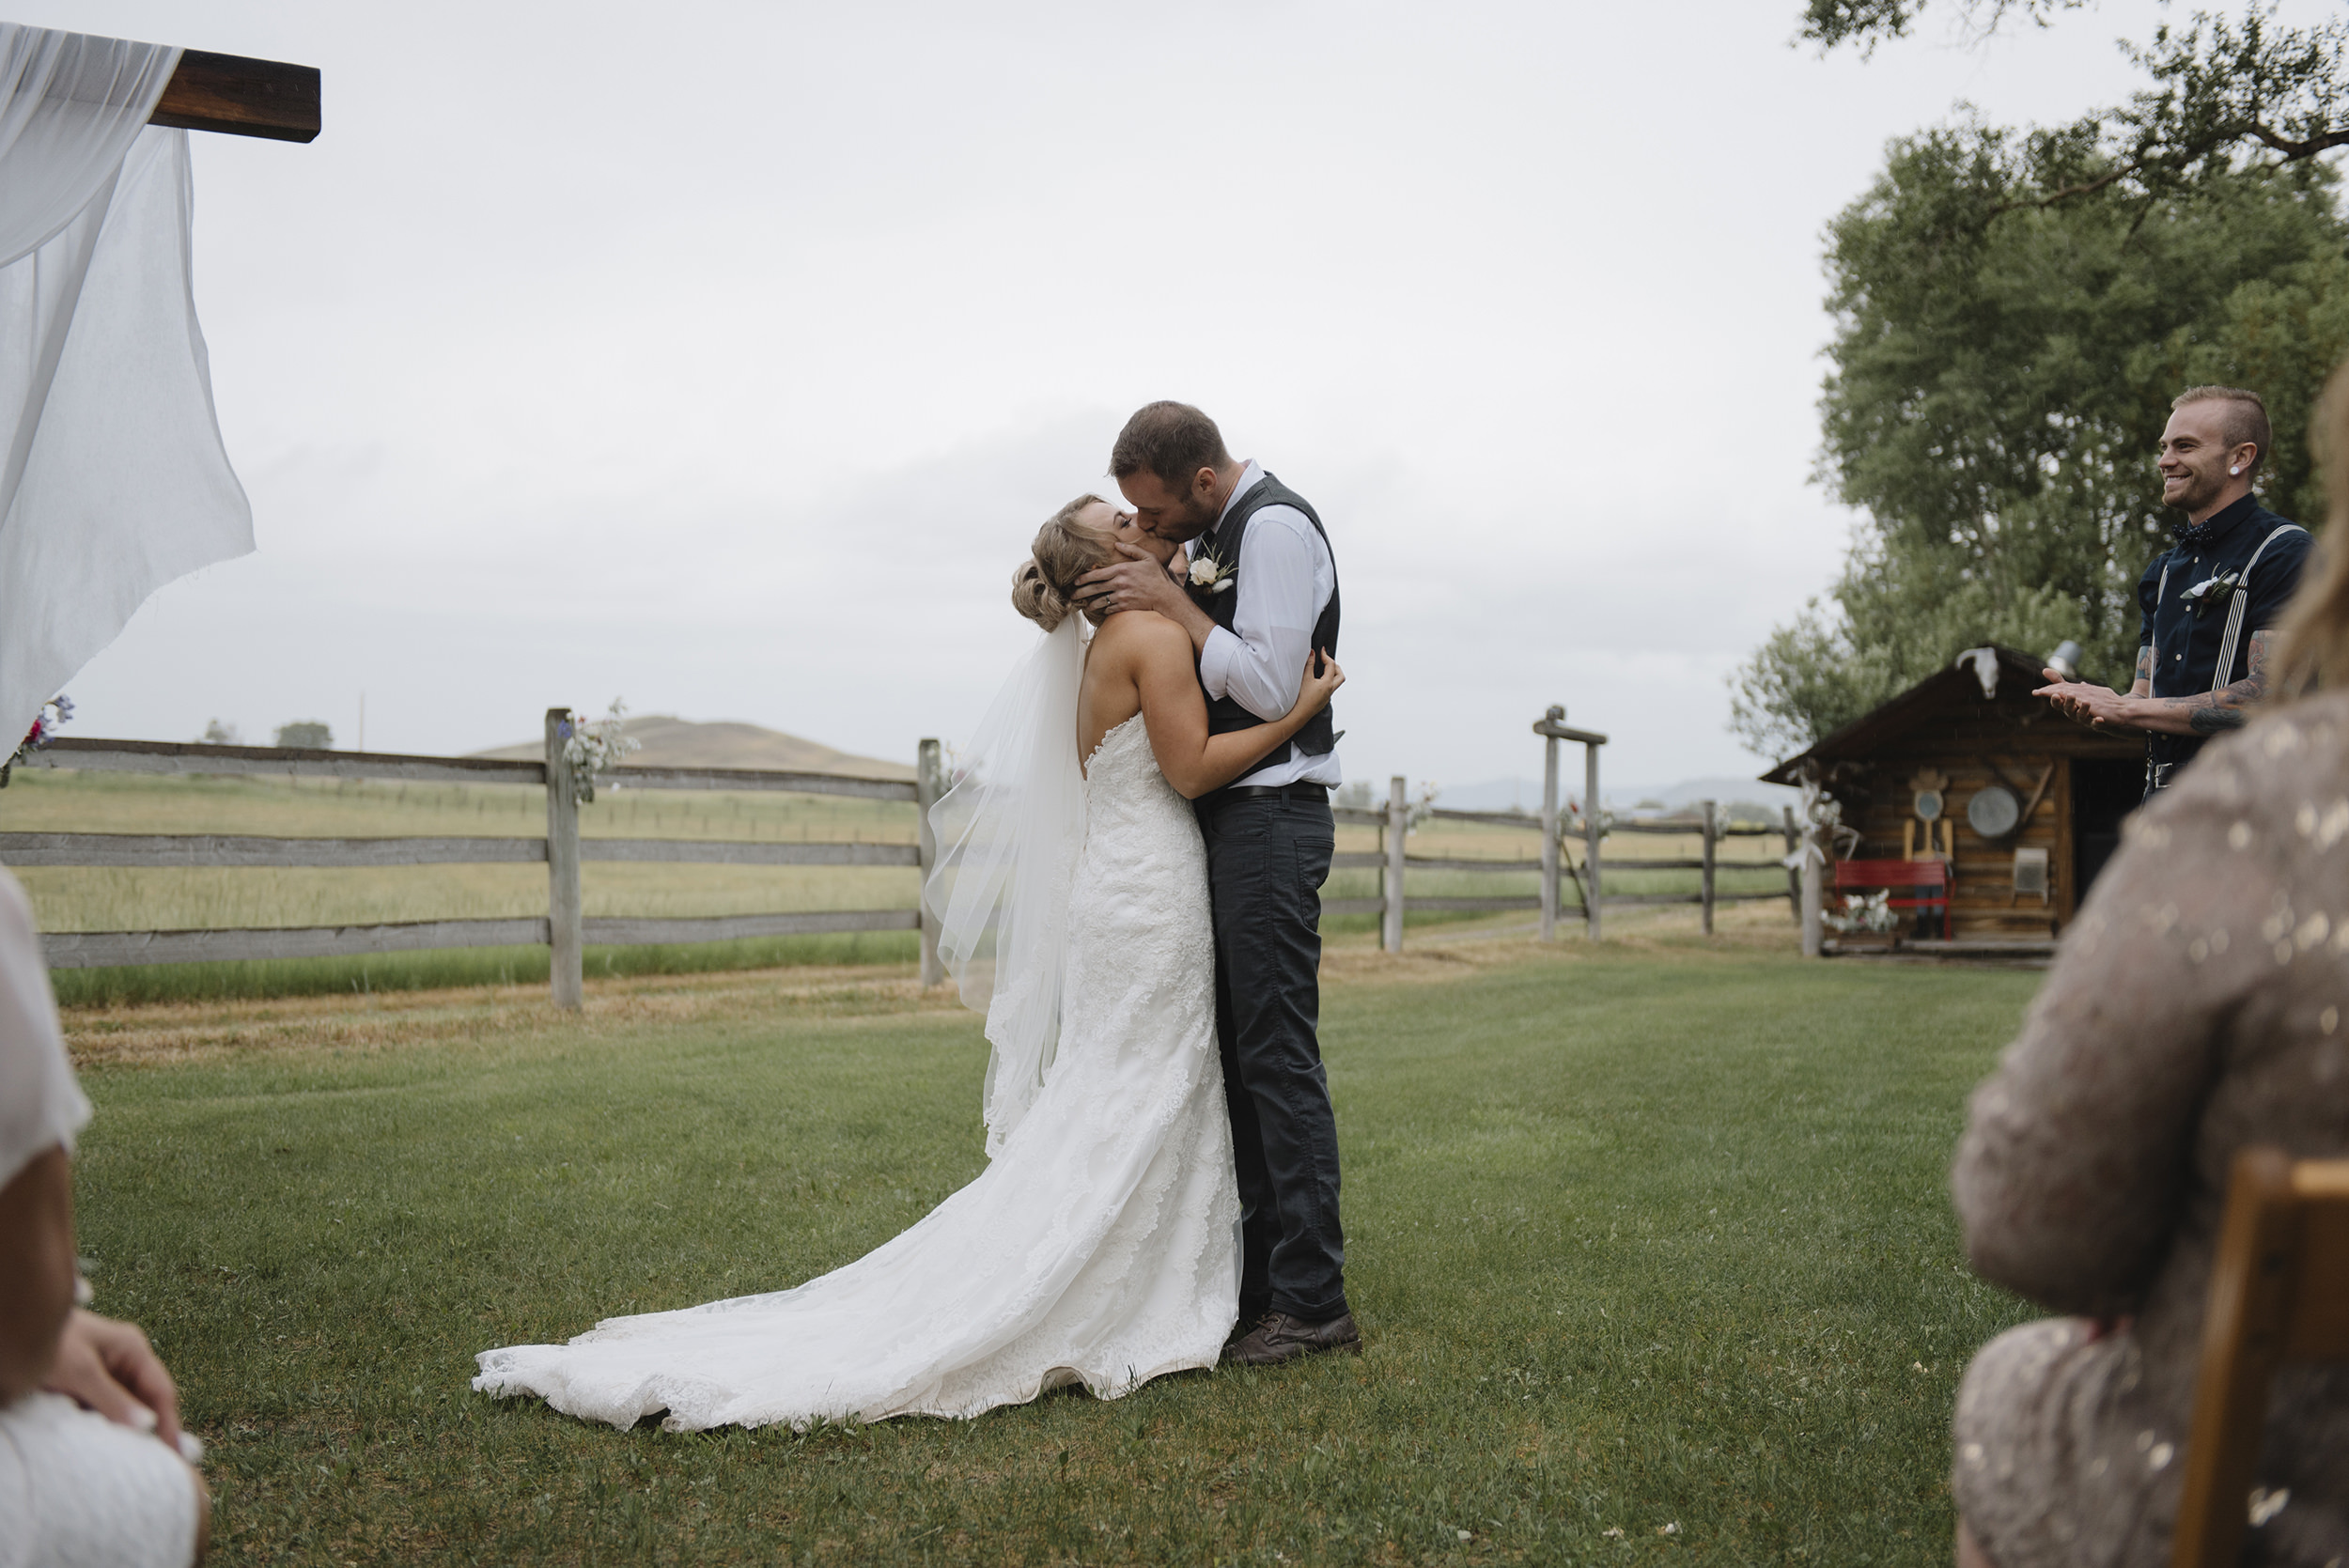 Colby-and-Jess-Intimate-Backyard-Wedding-Bozeman-Montana400.jpg